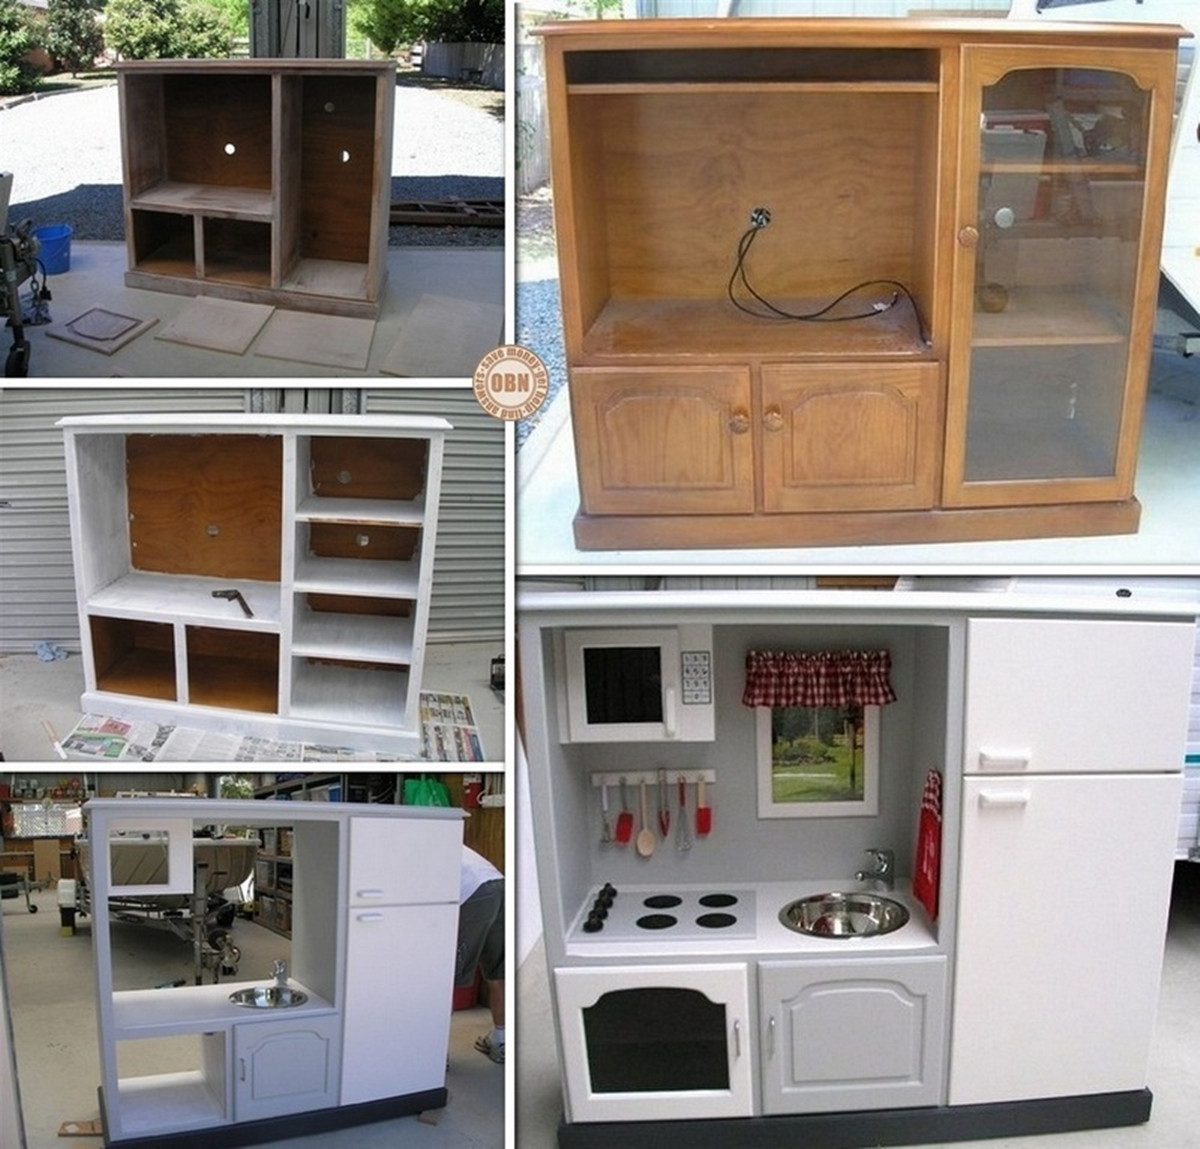 Best ideas about DIY Kids Play Kitchen . Save or Pin Wonderful DIY Kids Play Kitchen from Old Nightstand Now.